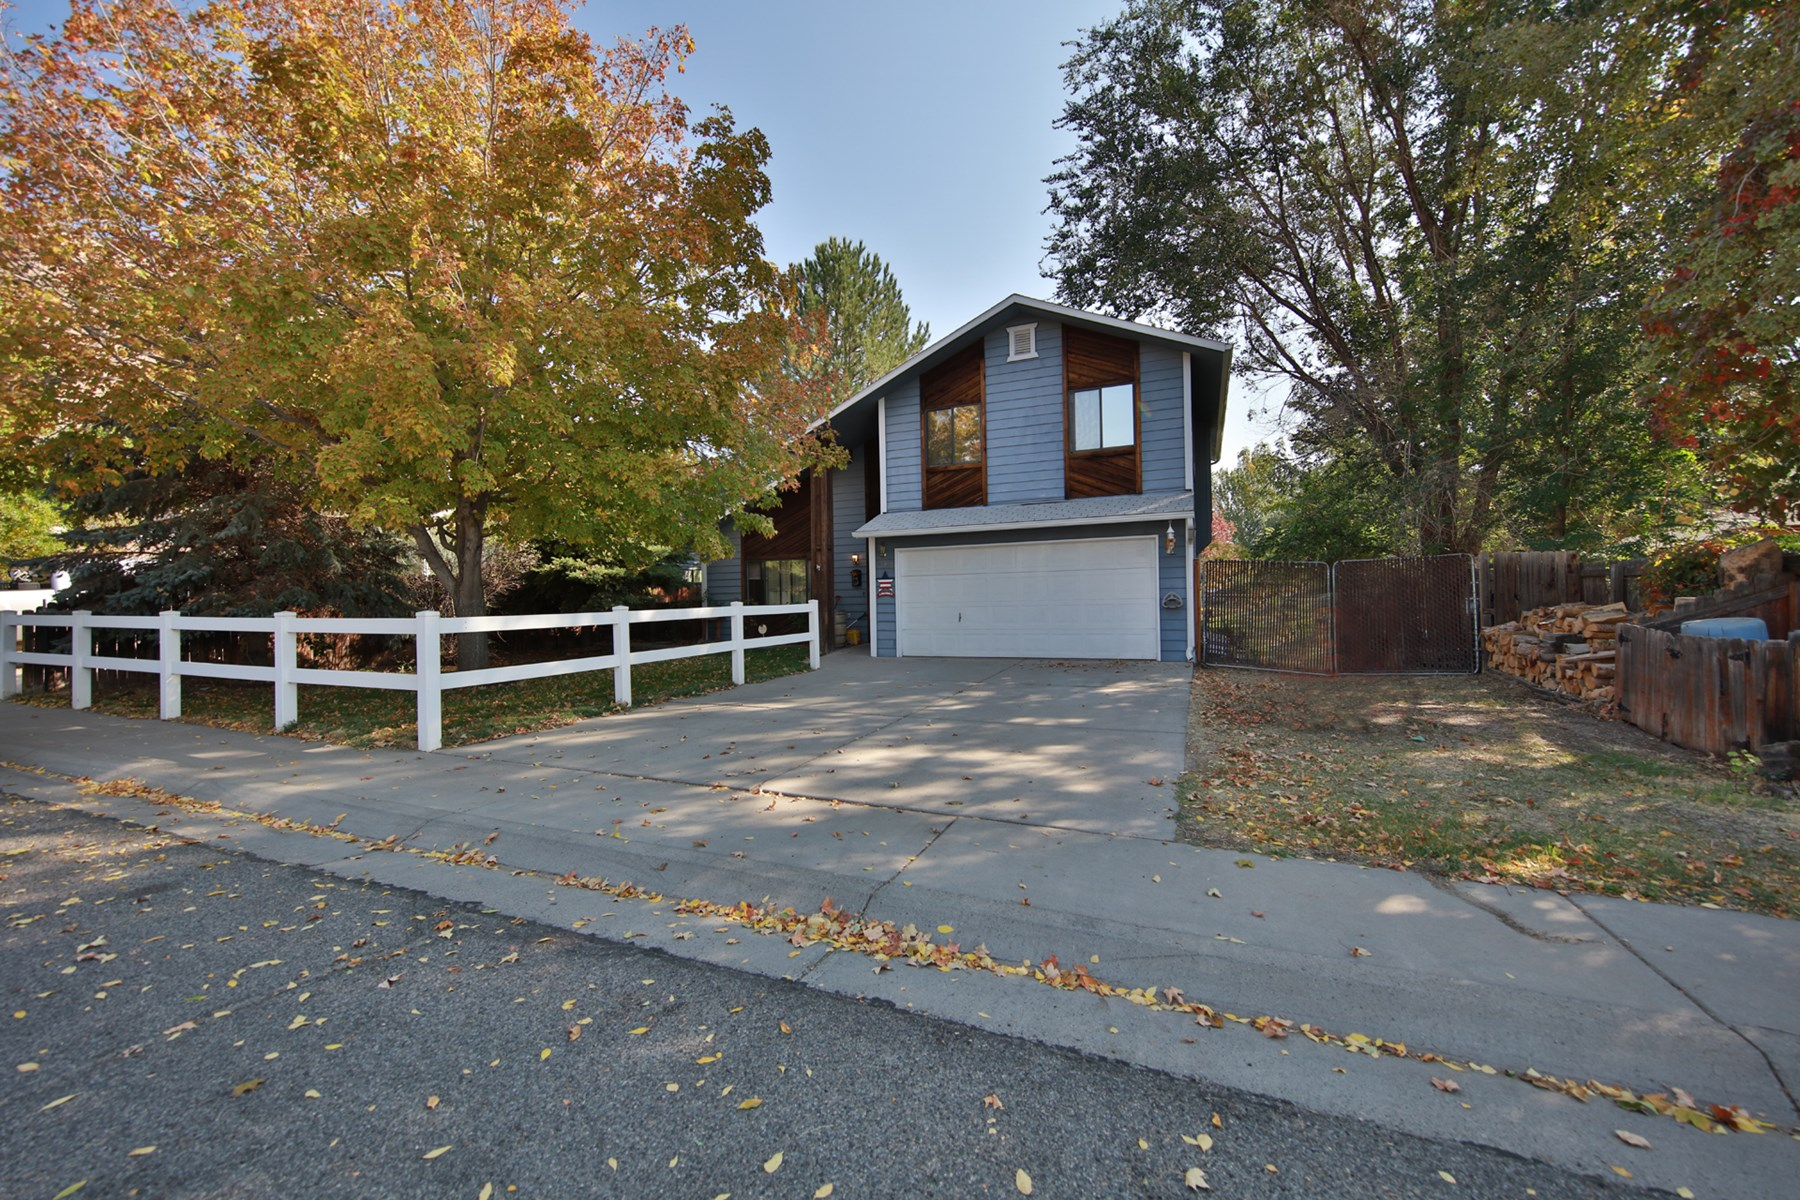 Home in Palisade for Sale Near Winery